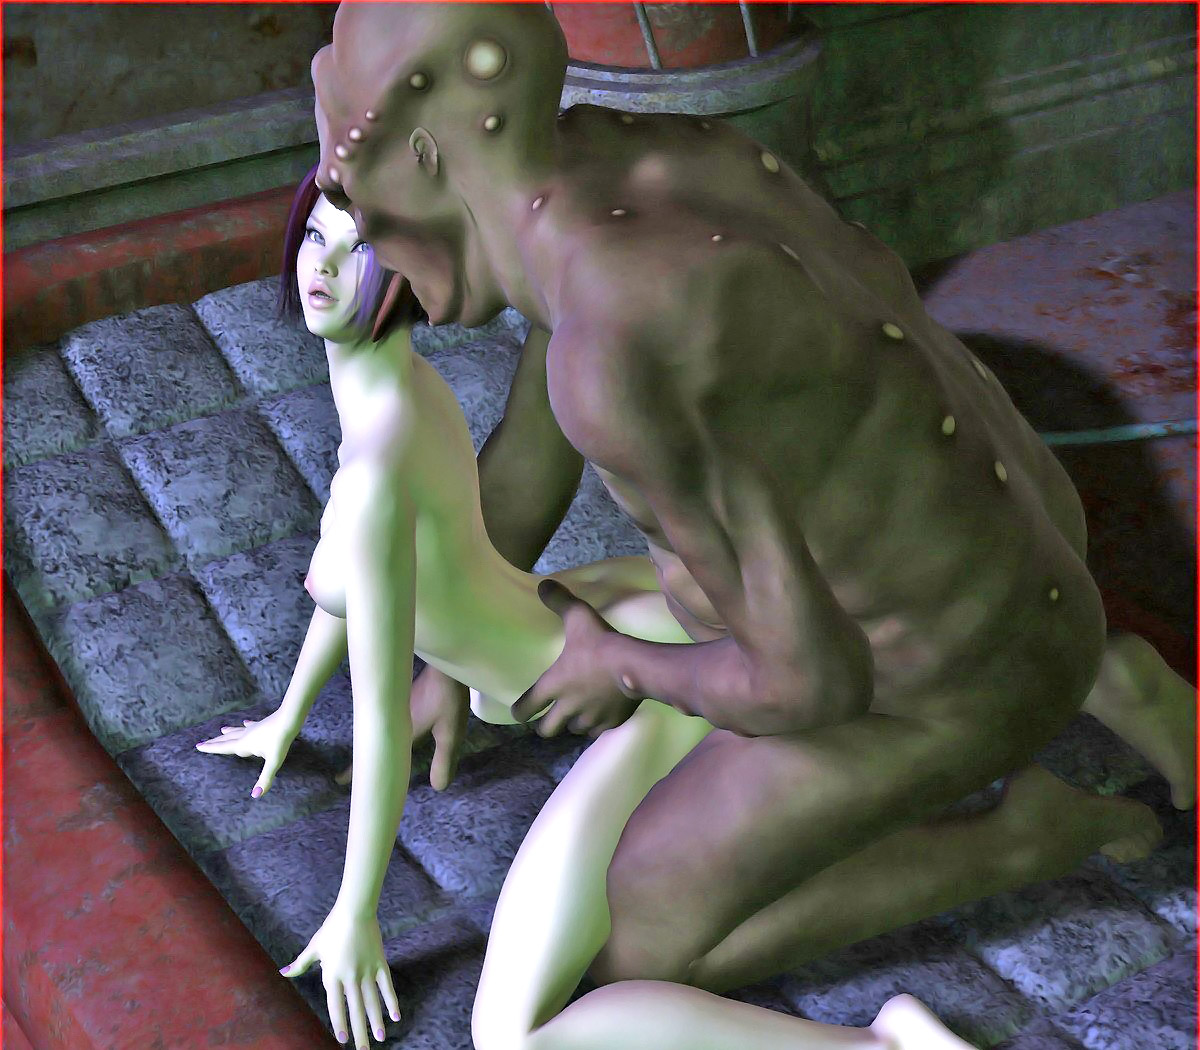 Video porno hentai tomb raider alien nudes pics